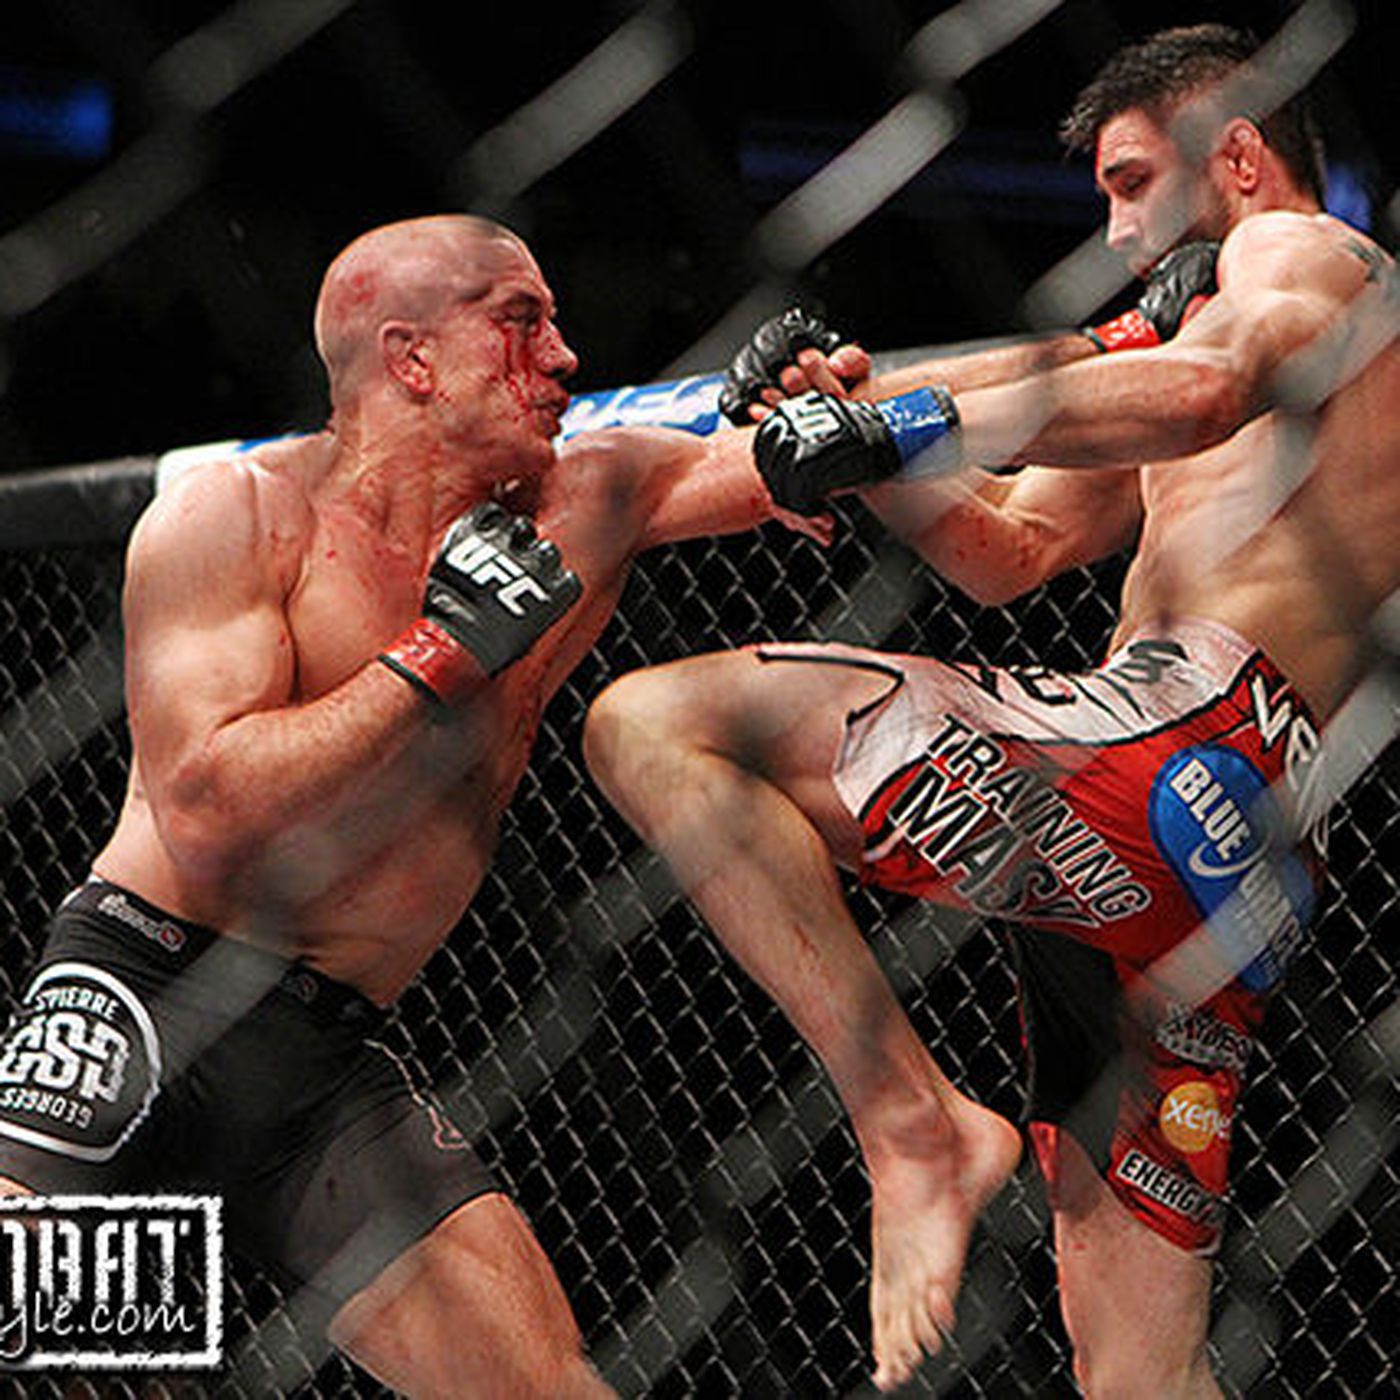 St pierre vs condit betting odds tolworth hurdle oddschecker betting